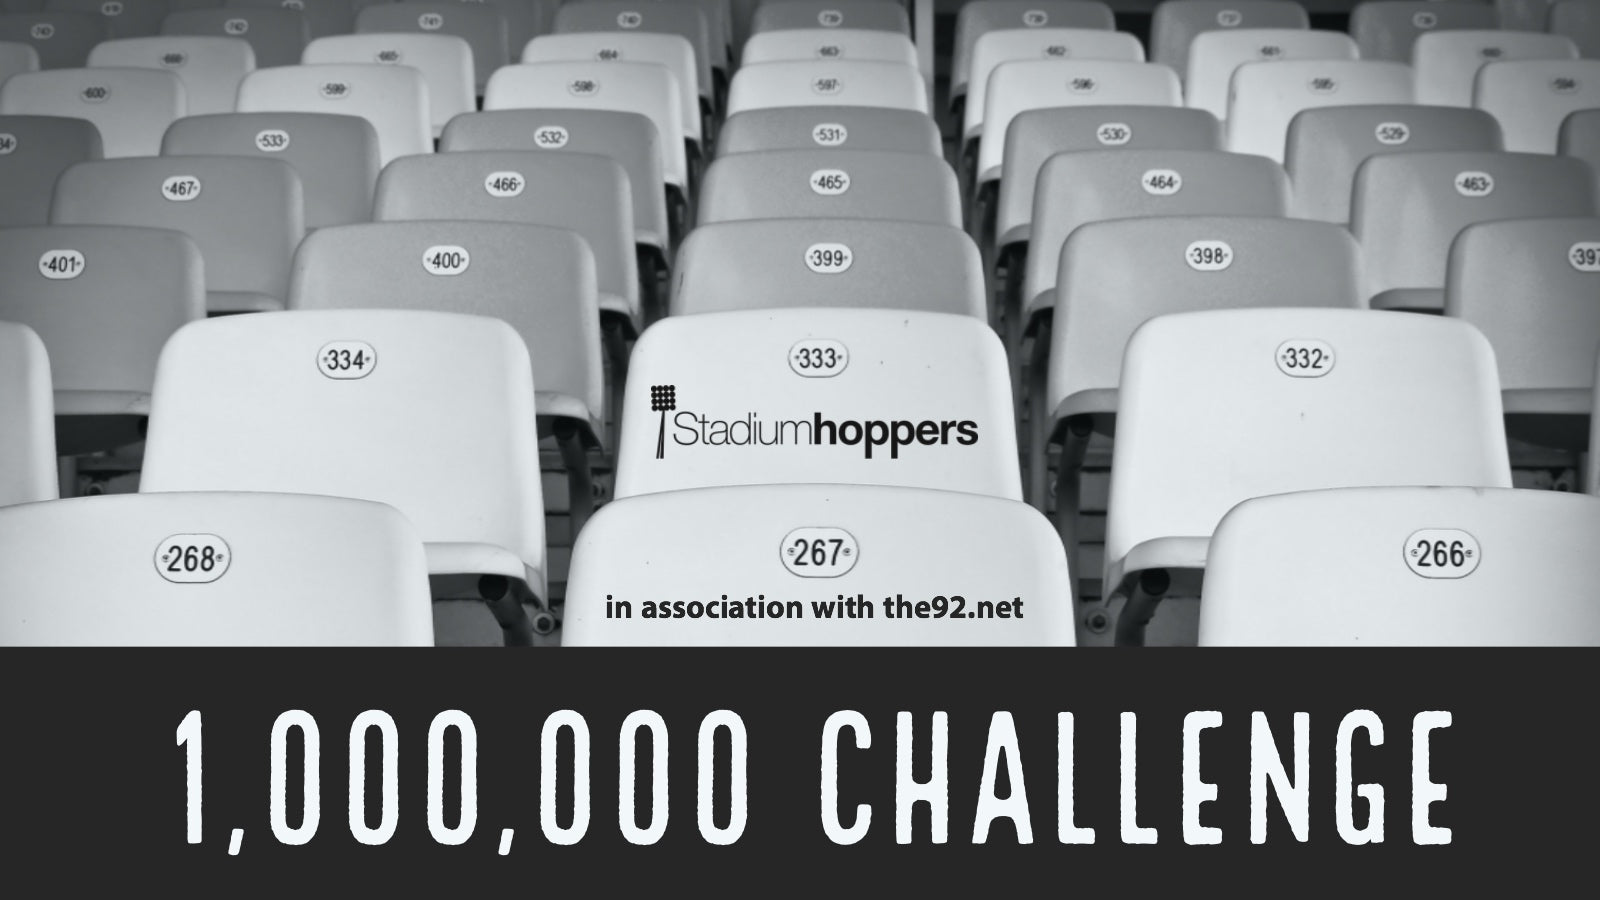 The 1,000,000 Seat Challenge to Rule Them All